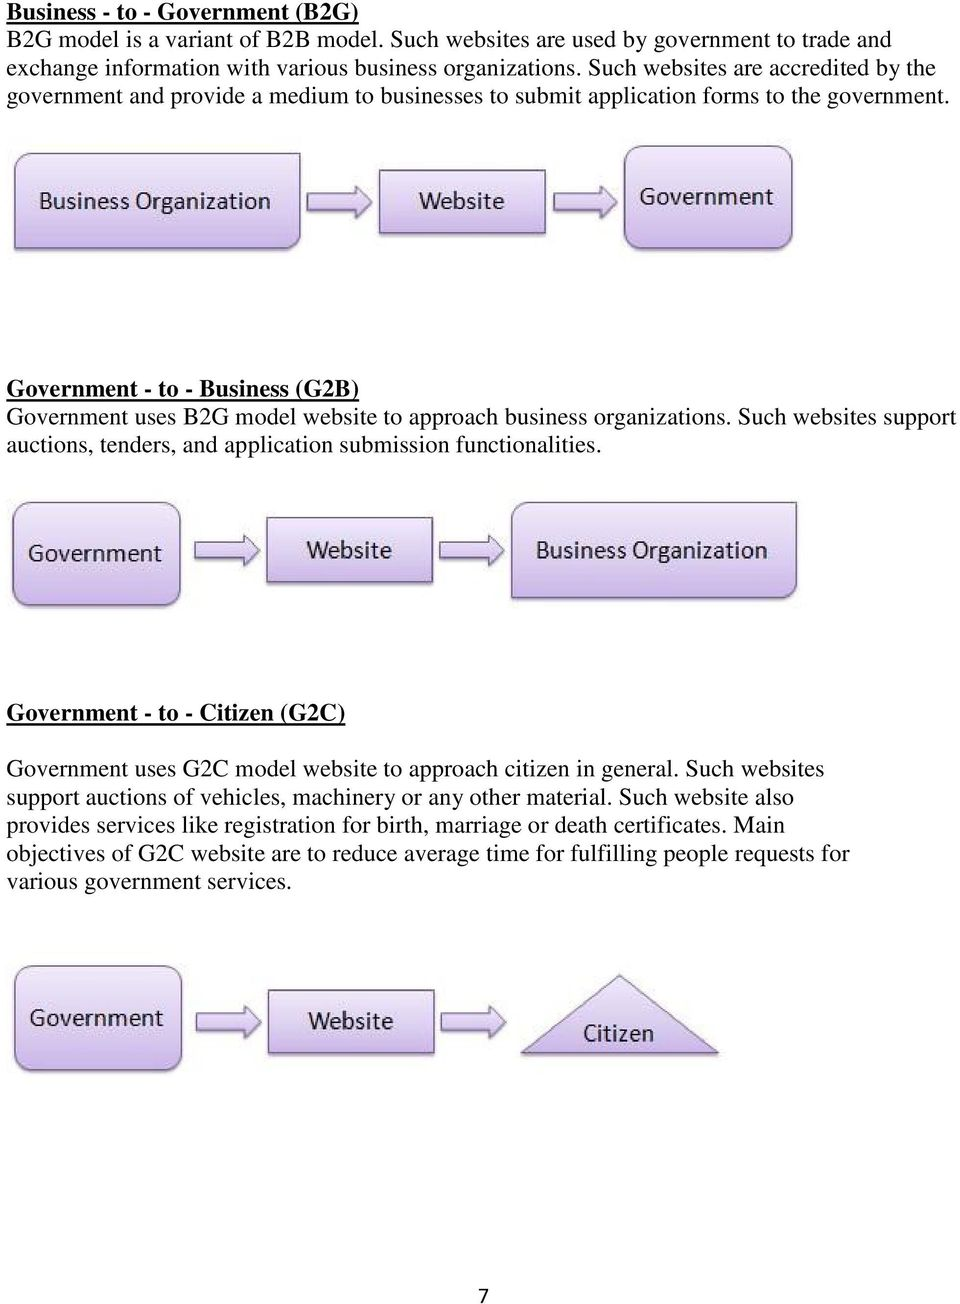 Government - to - Business (G2B) Government uses B2G model website to approach business organizations. Such websites support auctions, tenders, and application submission functionalities.